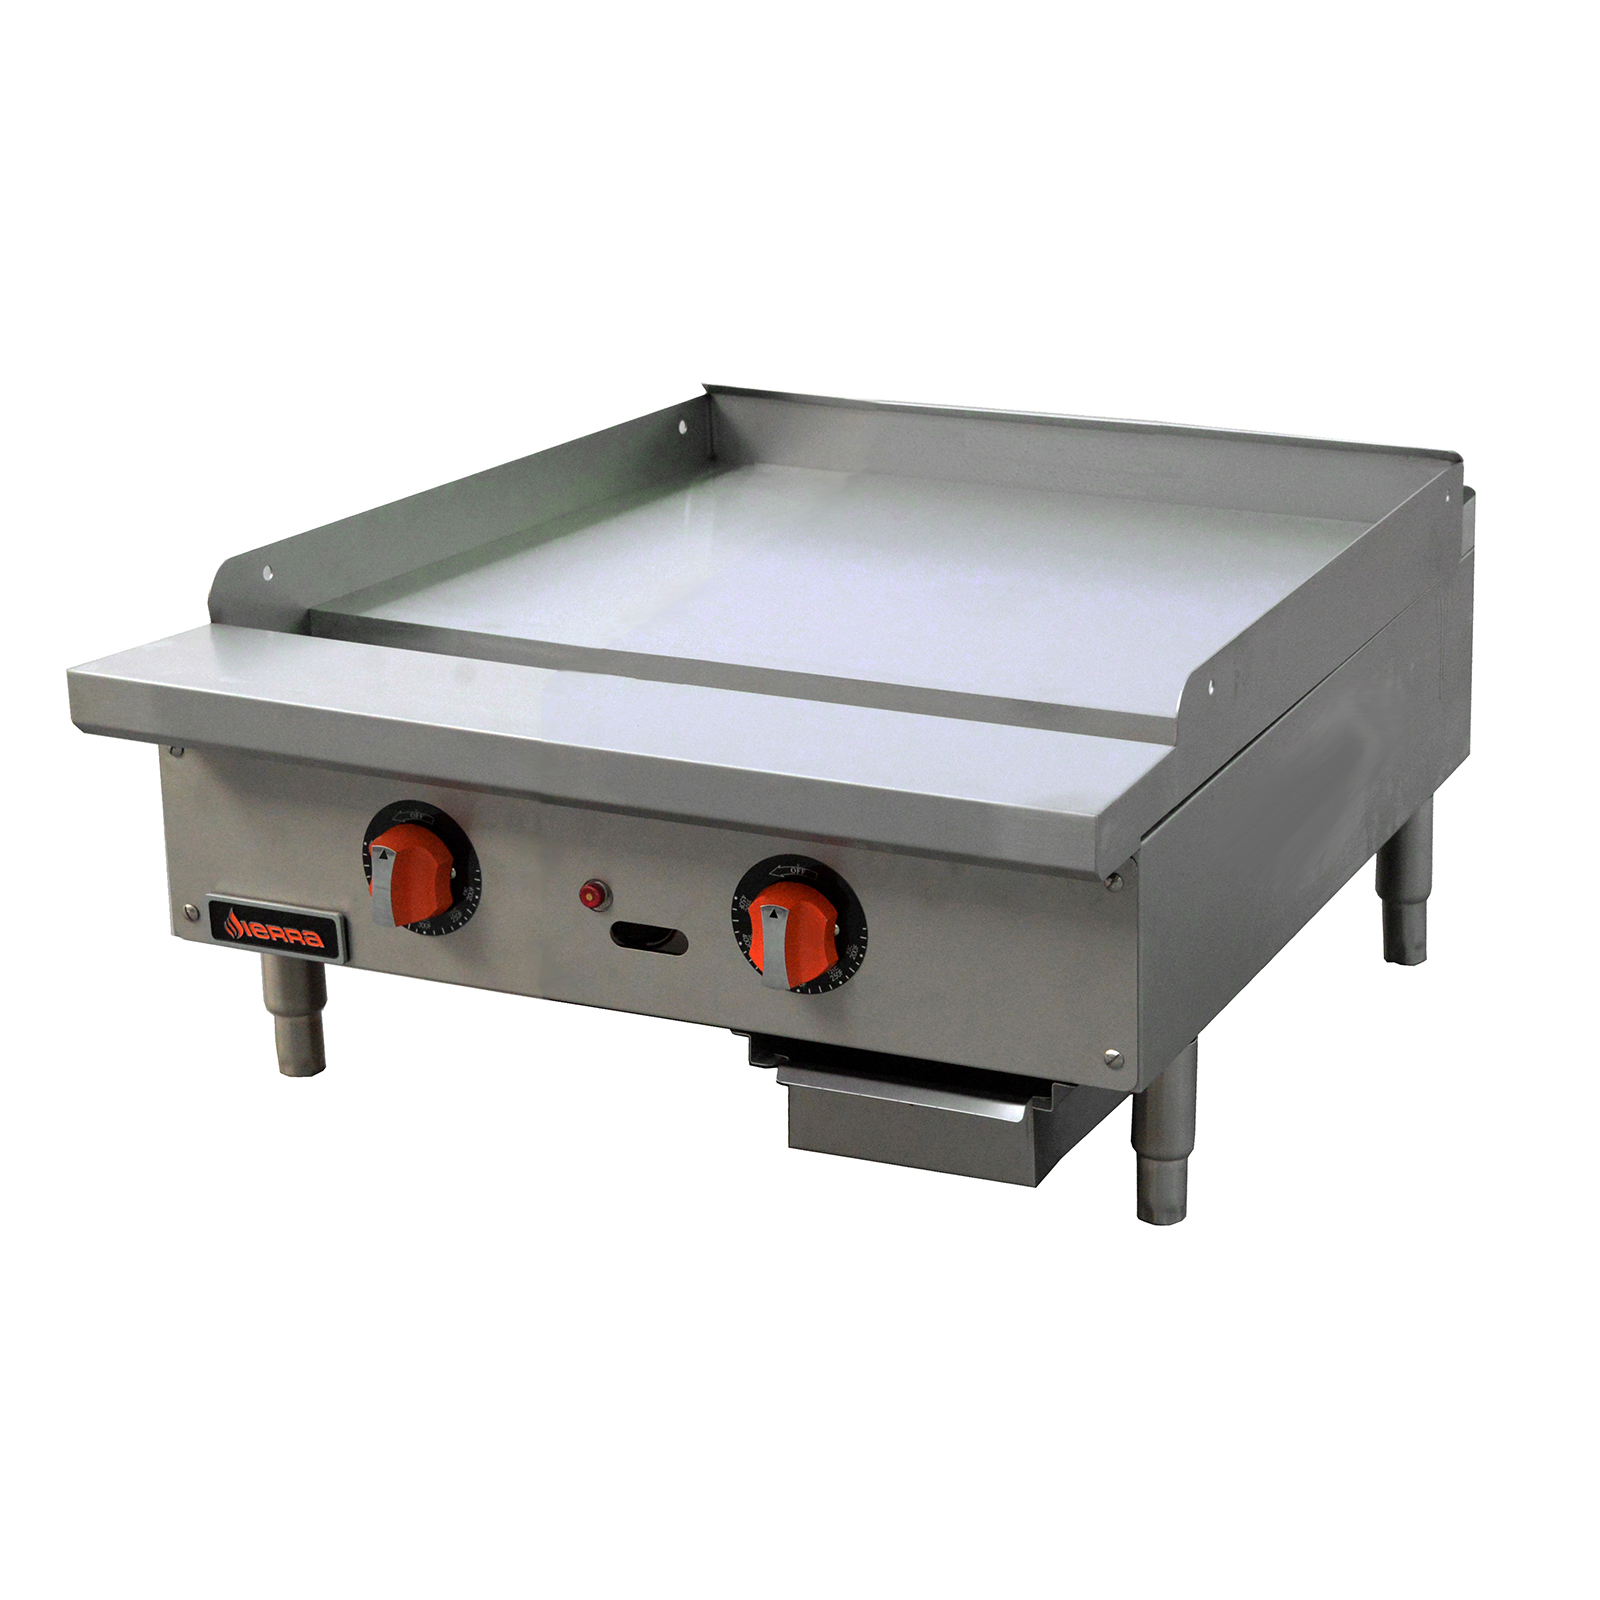 MVP SRTG-24 griddle, gas, countertop